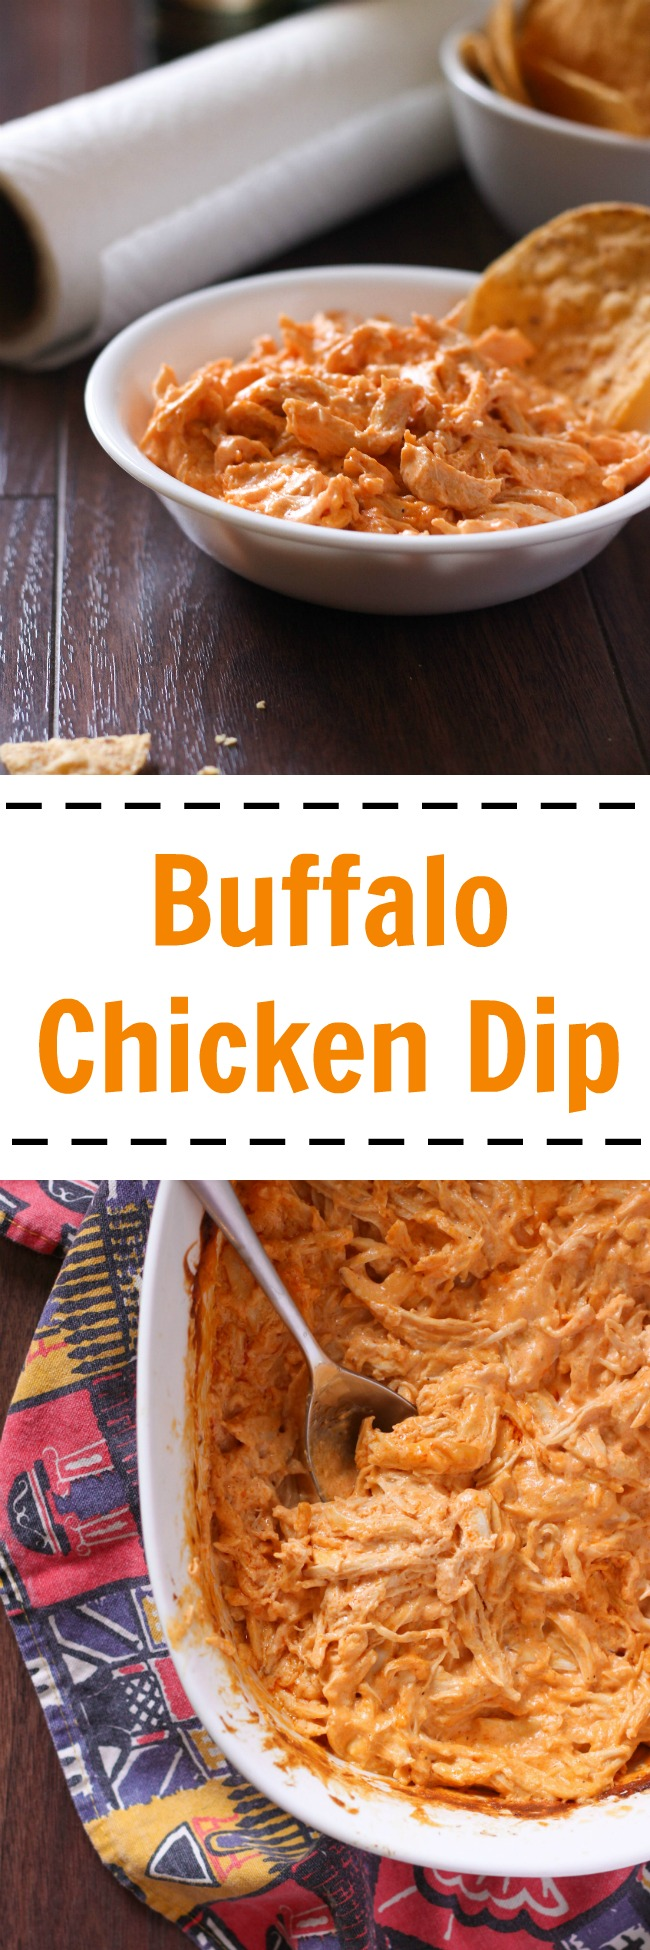 Buffalo chicken dip is spicy, creamy, and full of delicious chicken. It's perfect for snacking or parties. www.cookingismessy.com